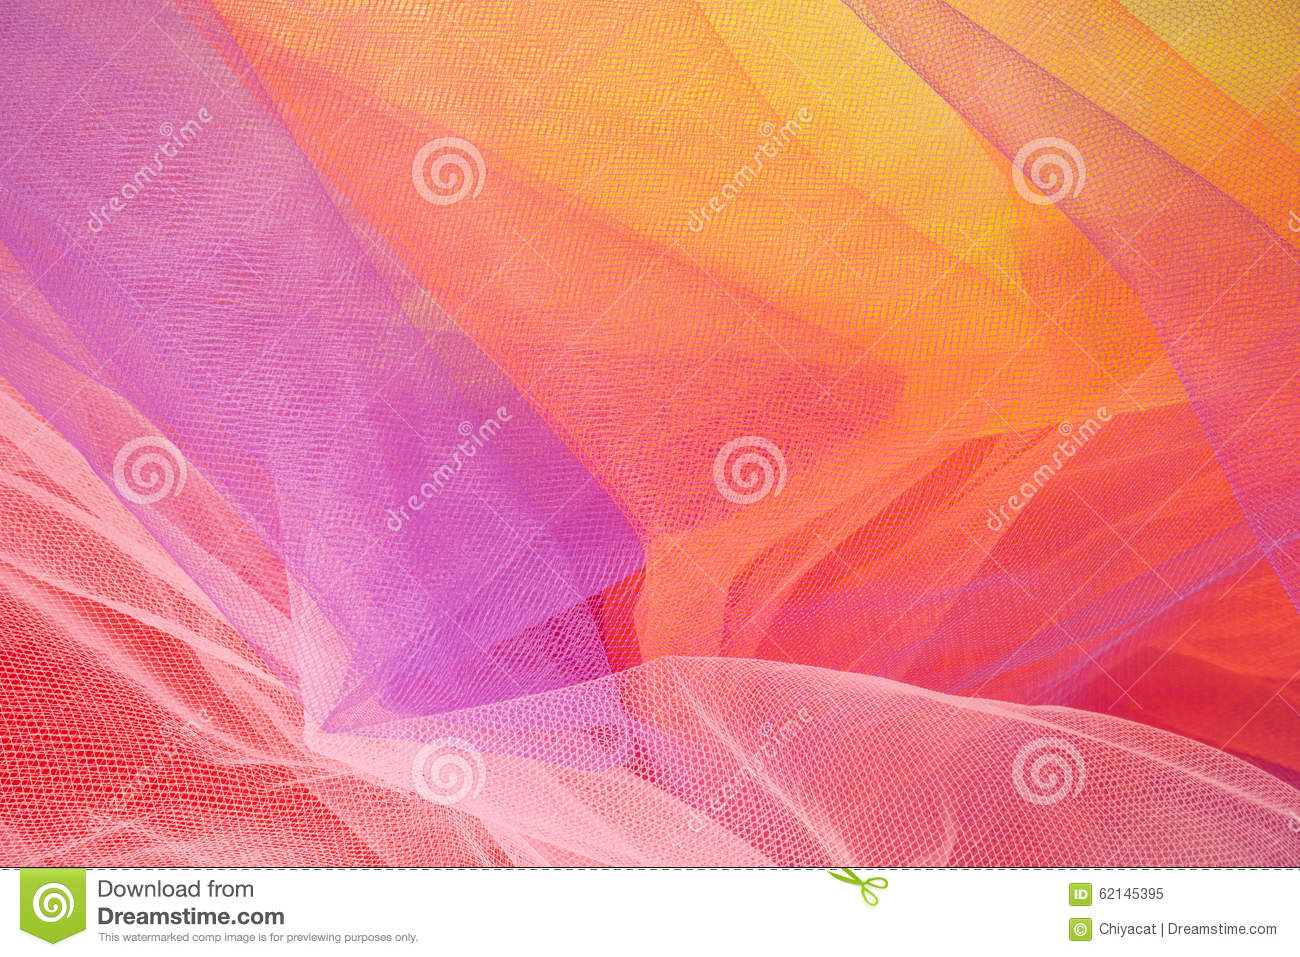 Colorful Abstract Tulle Background and Textures #1